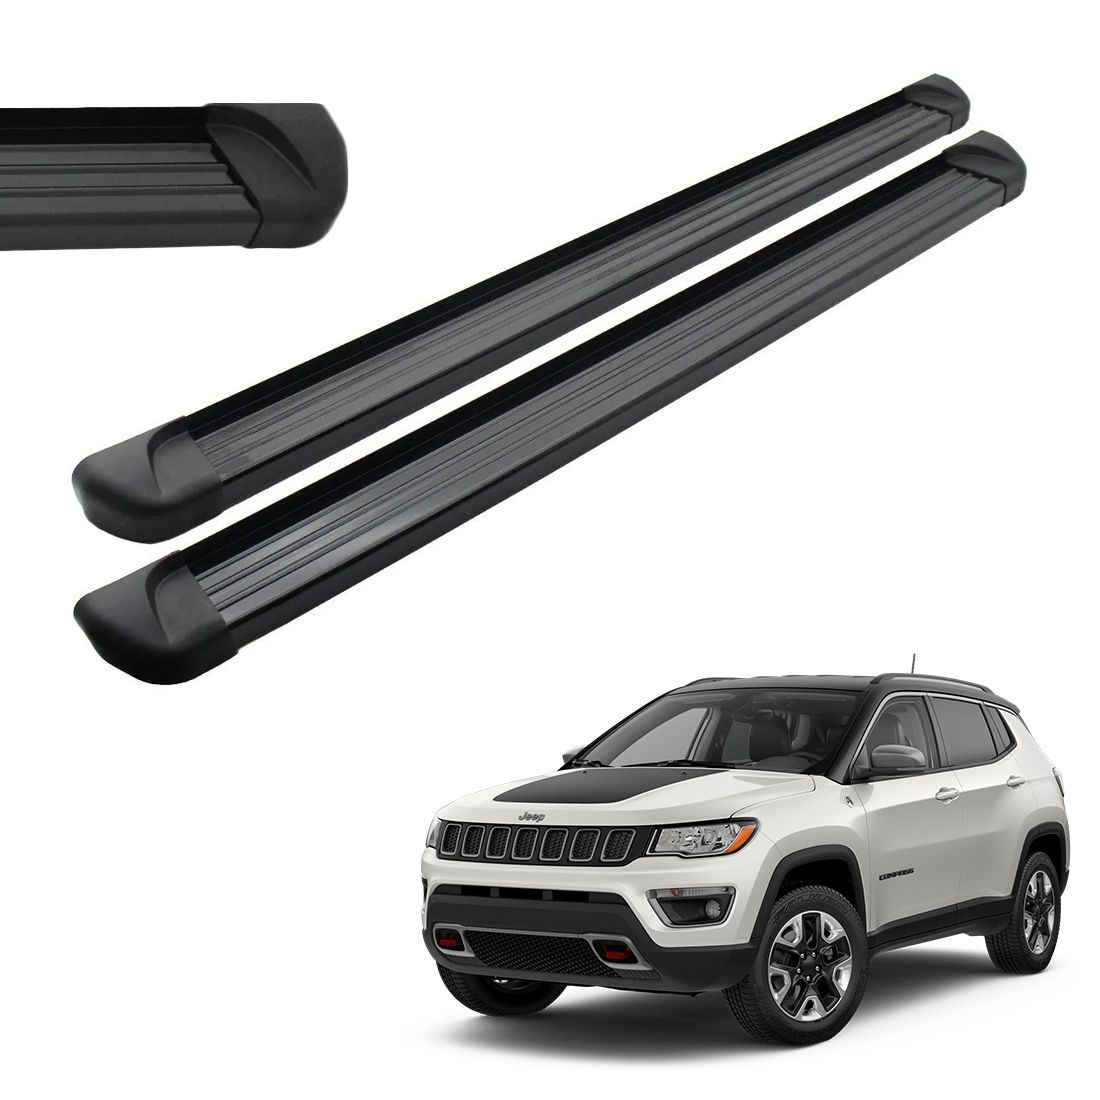 Estribo Lateral Aluminio Preto Jeep Compass